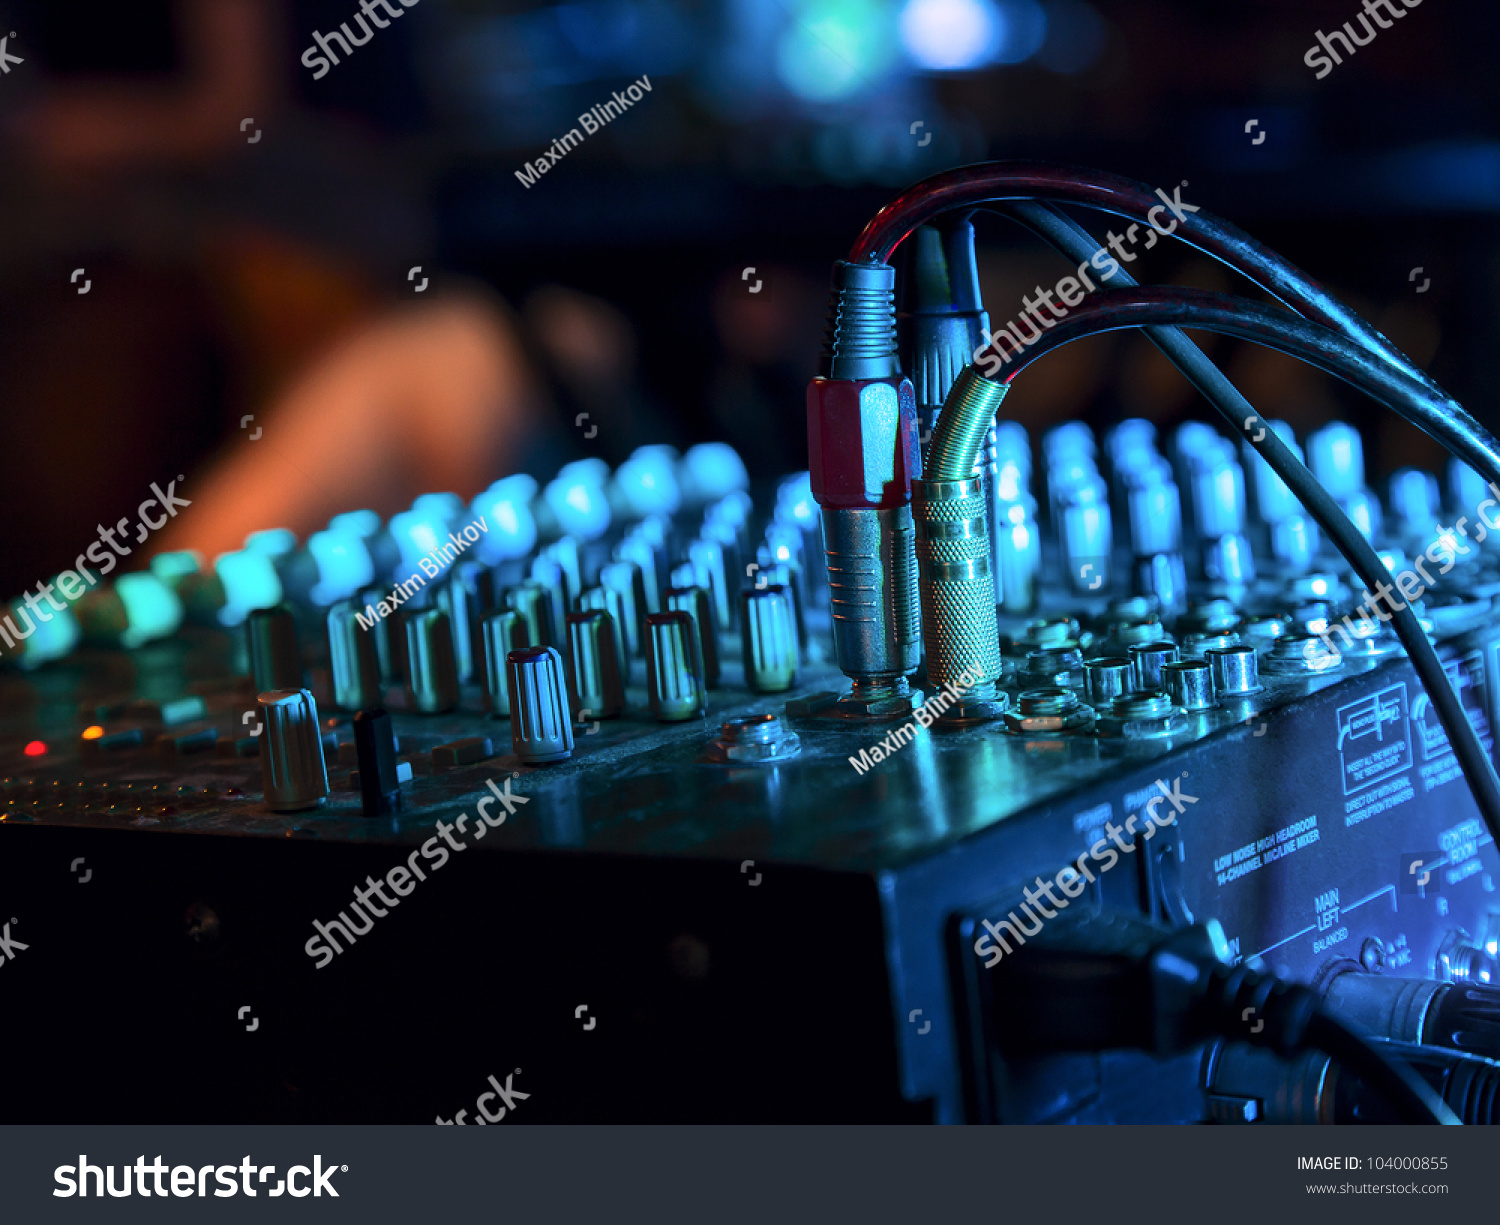 Music Mixer Nightclub Connected Wires Stock Photo Edit Now Audio Wiring Plans For At With